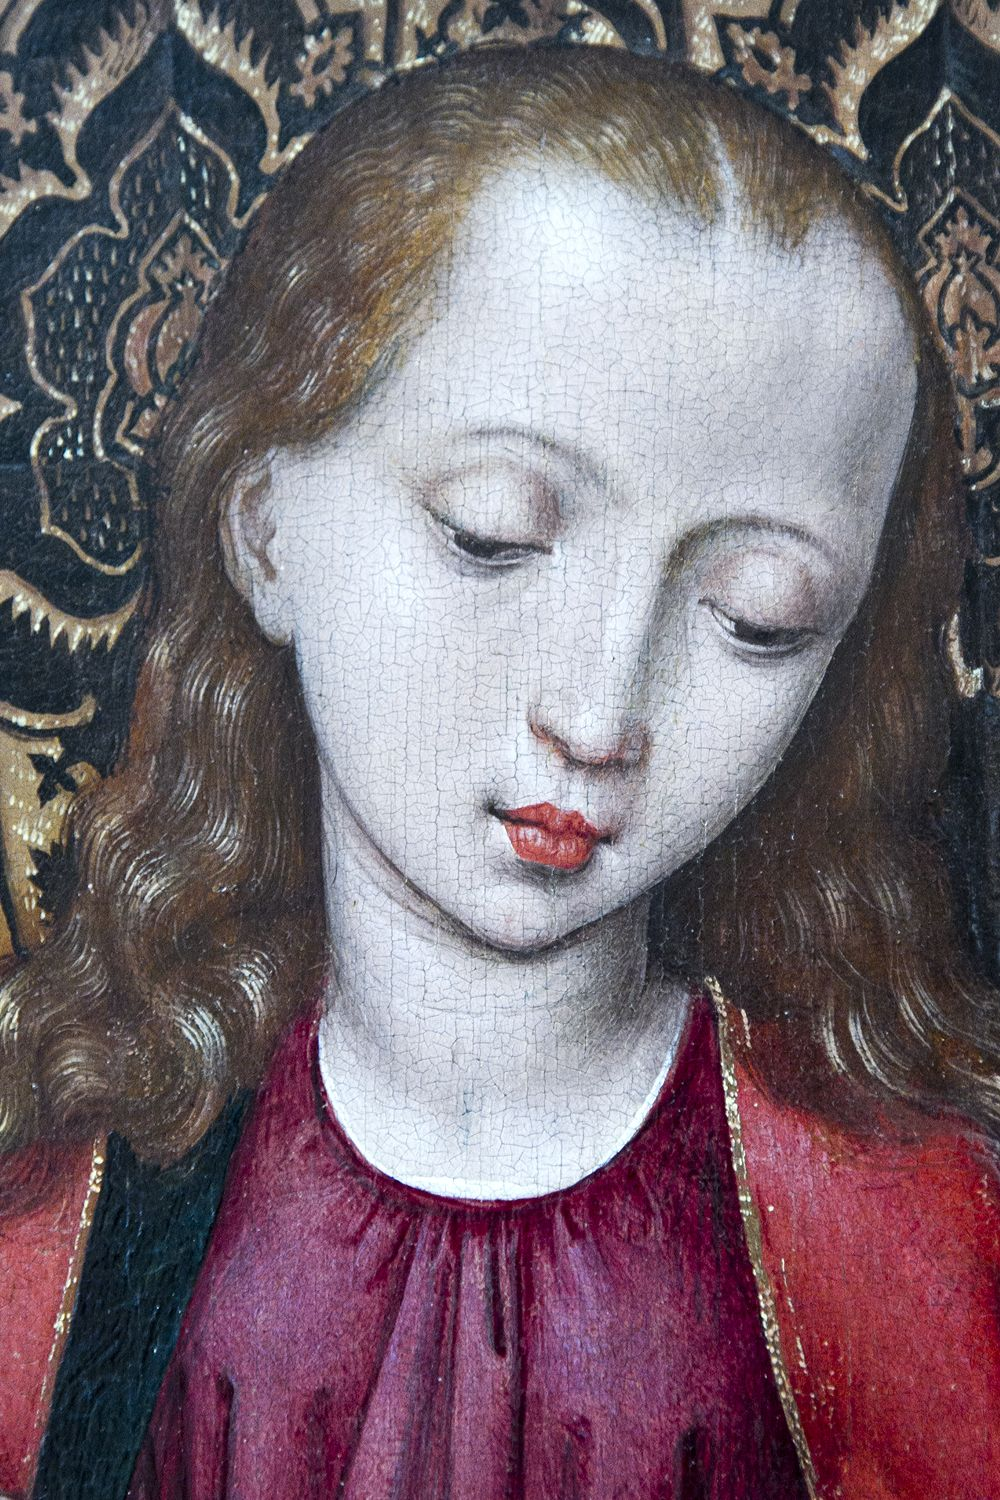 detail of the face of the Madonna from the Jan de Witte